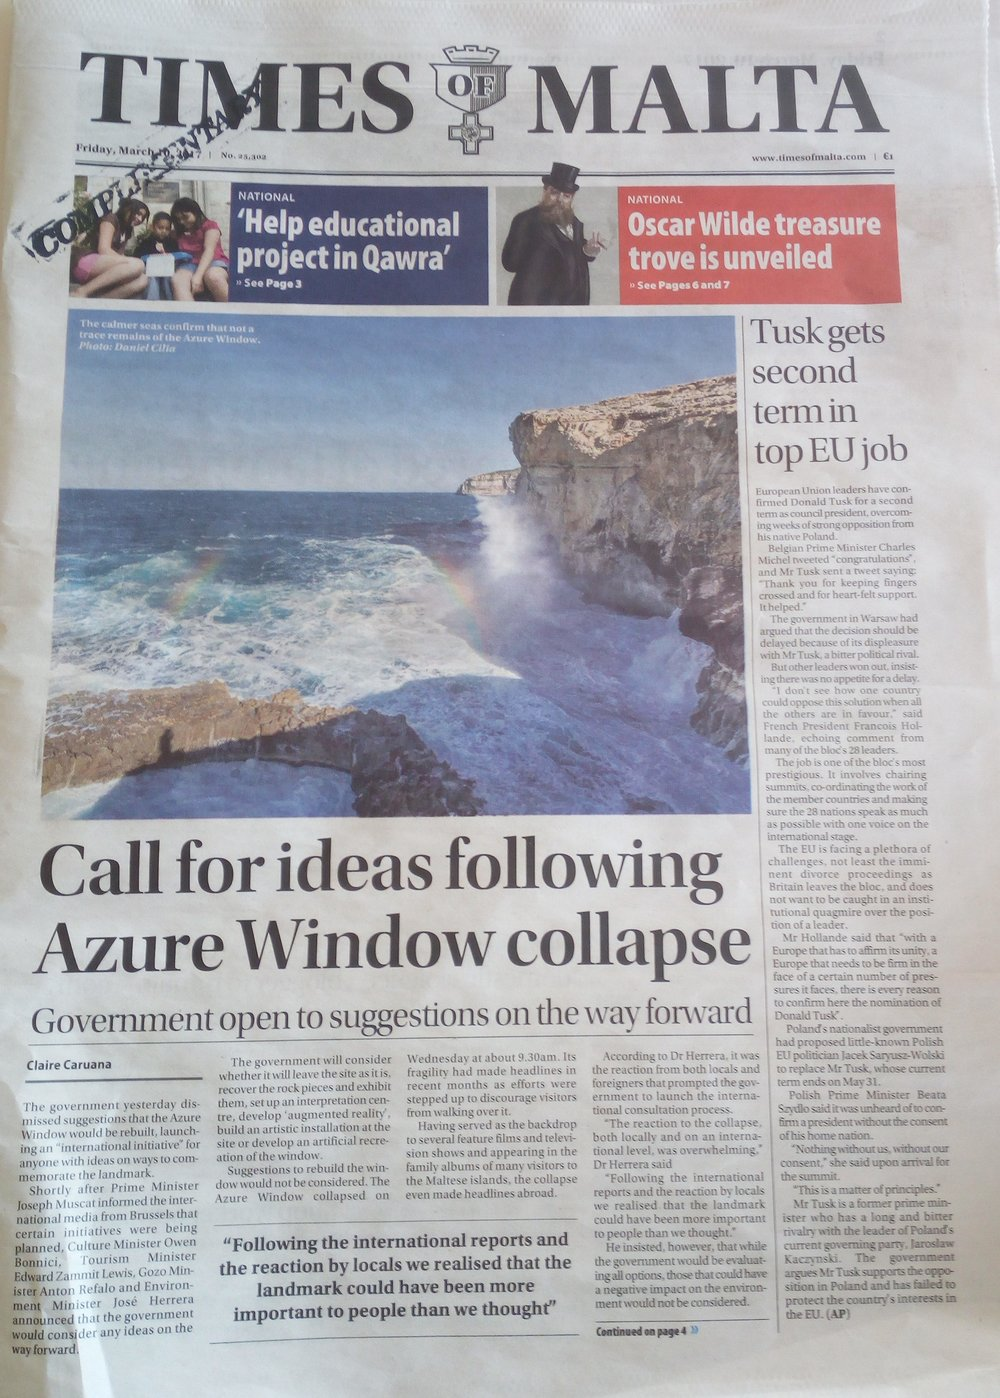 The title page of the Times of Malta on March 10th, following the collapse of the Azure Window.